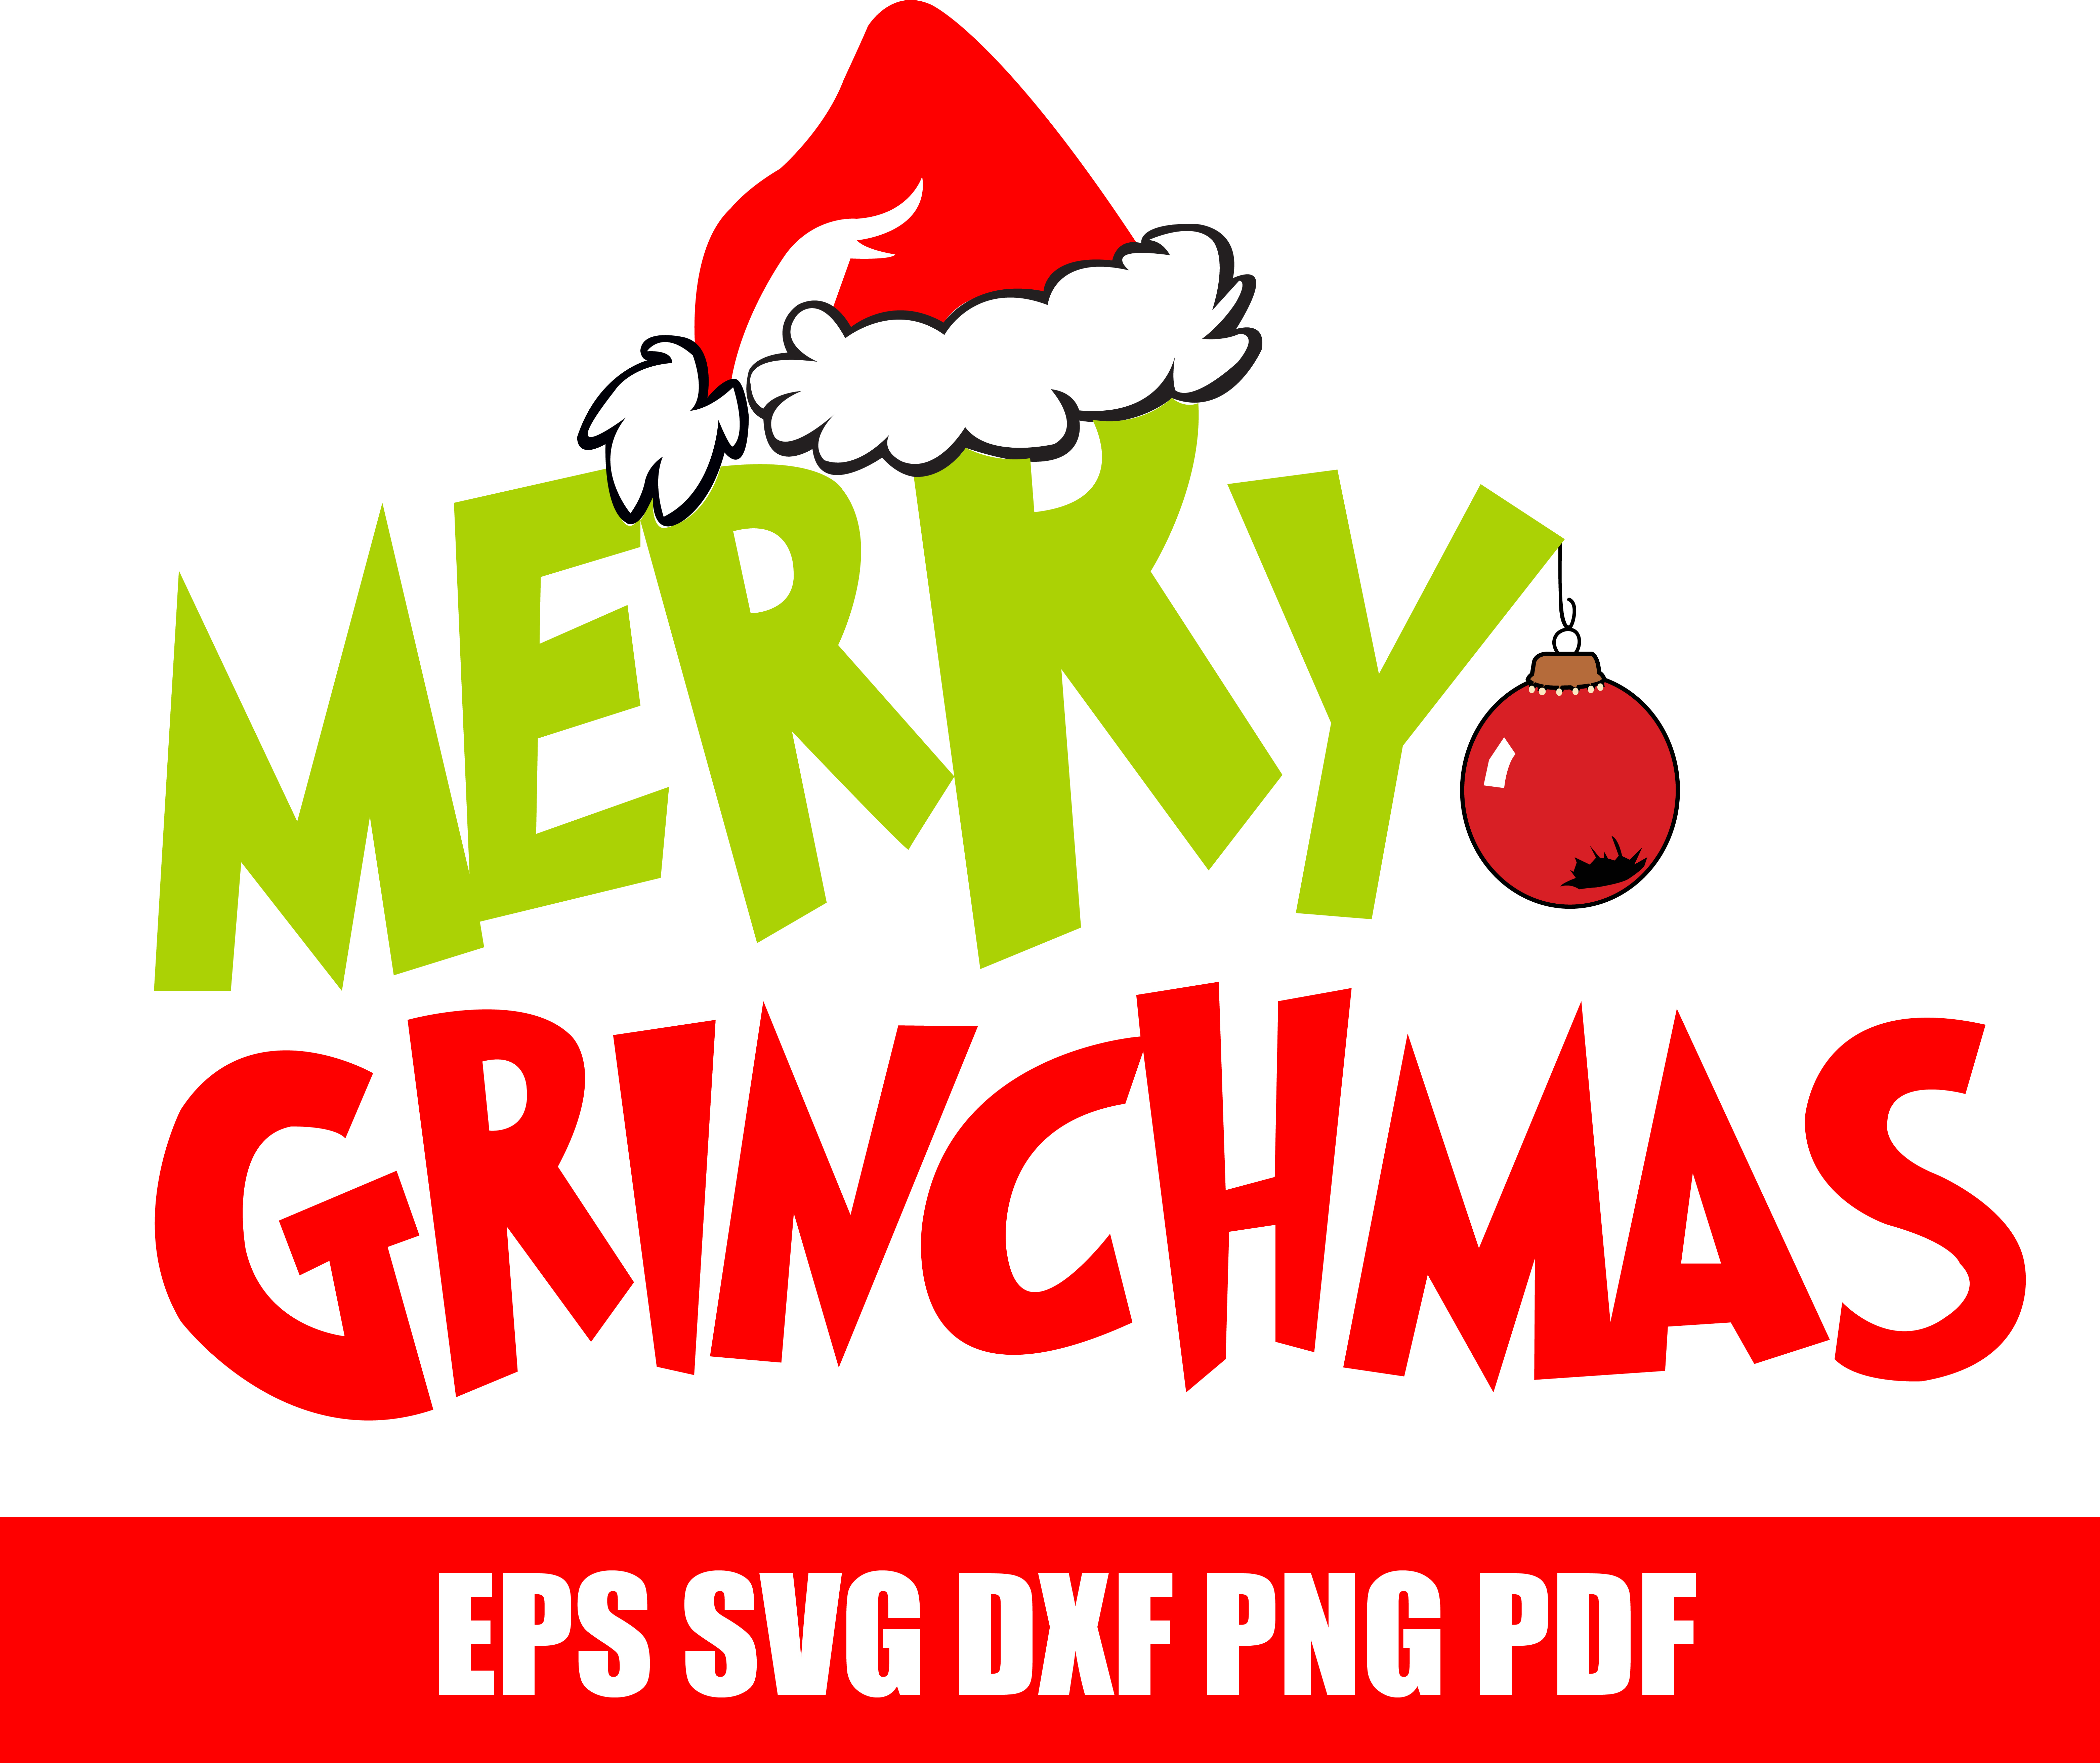 Merry Grinchmas Svg Cut File Grinch Christmas By Svggyn On Zibbet Grinch hand christmas countdown svg png and studio3 cut. zibbet marketplace